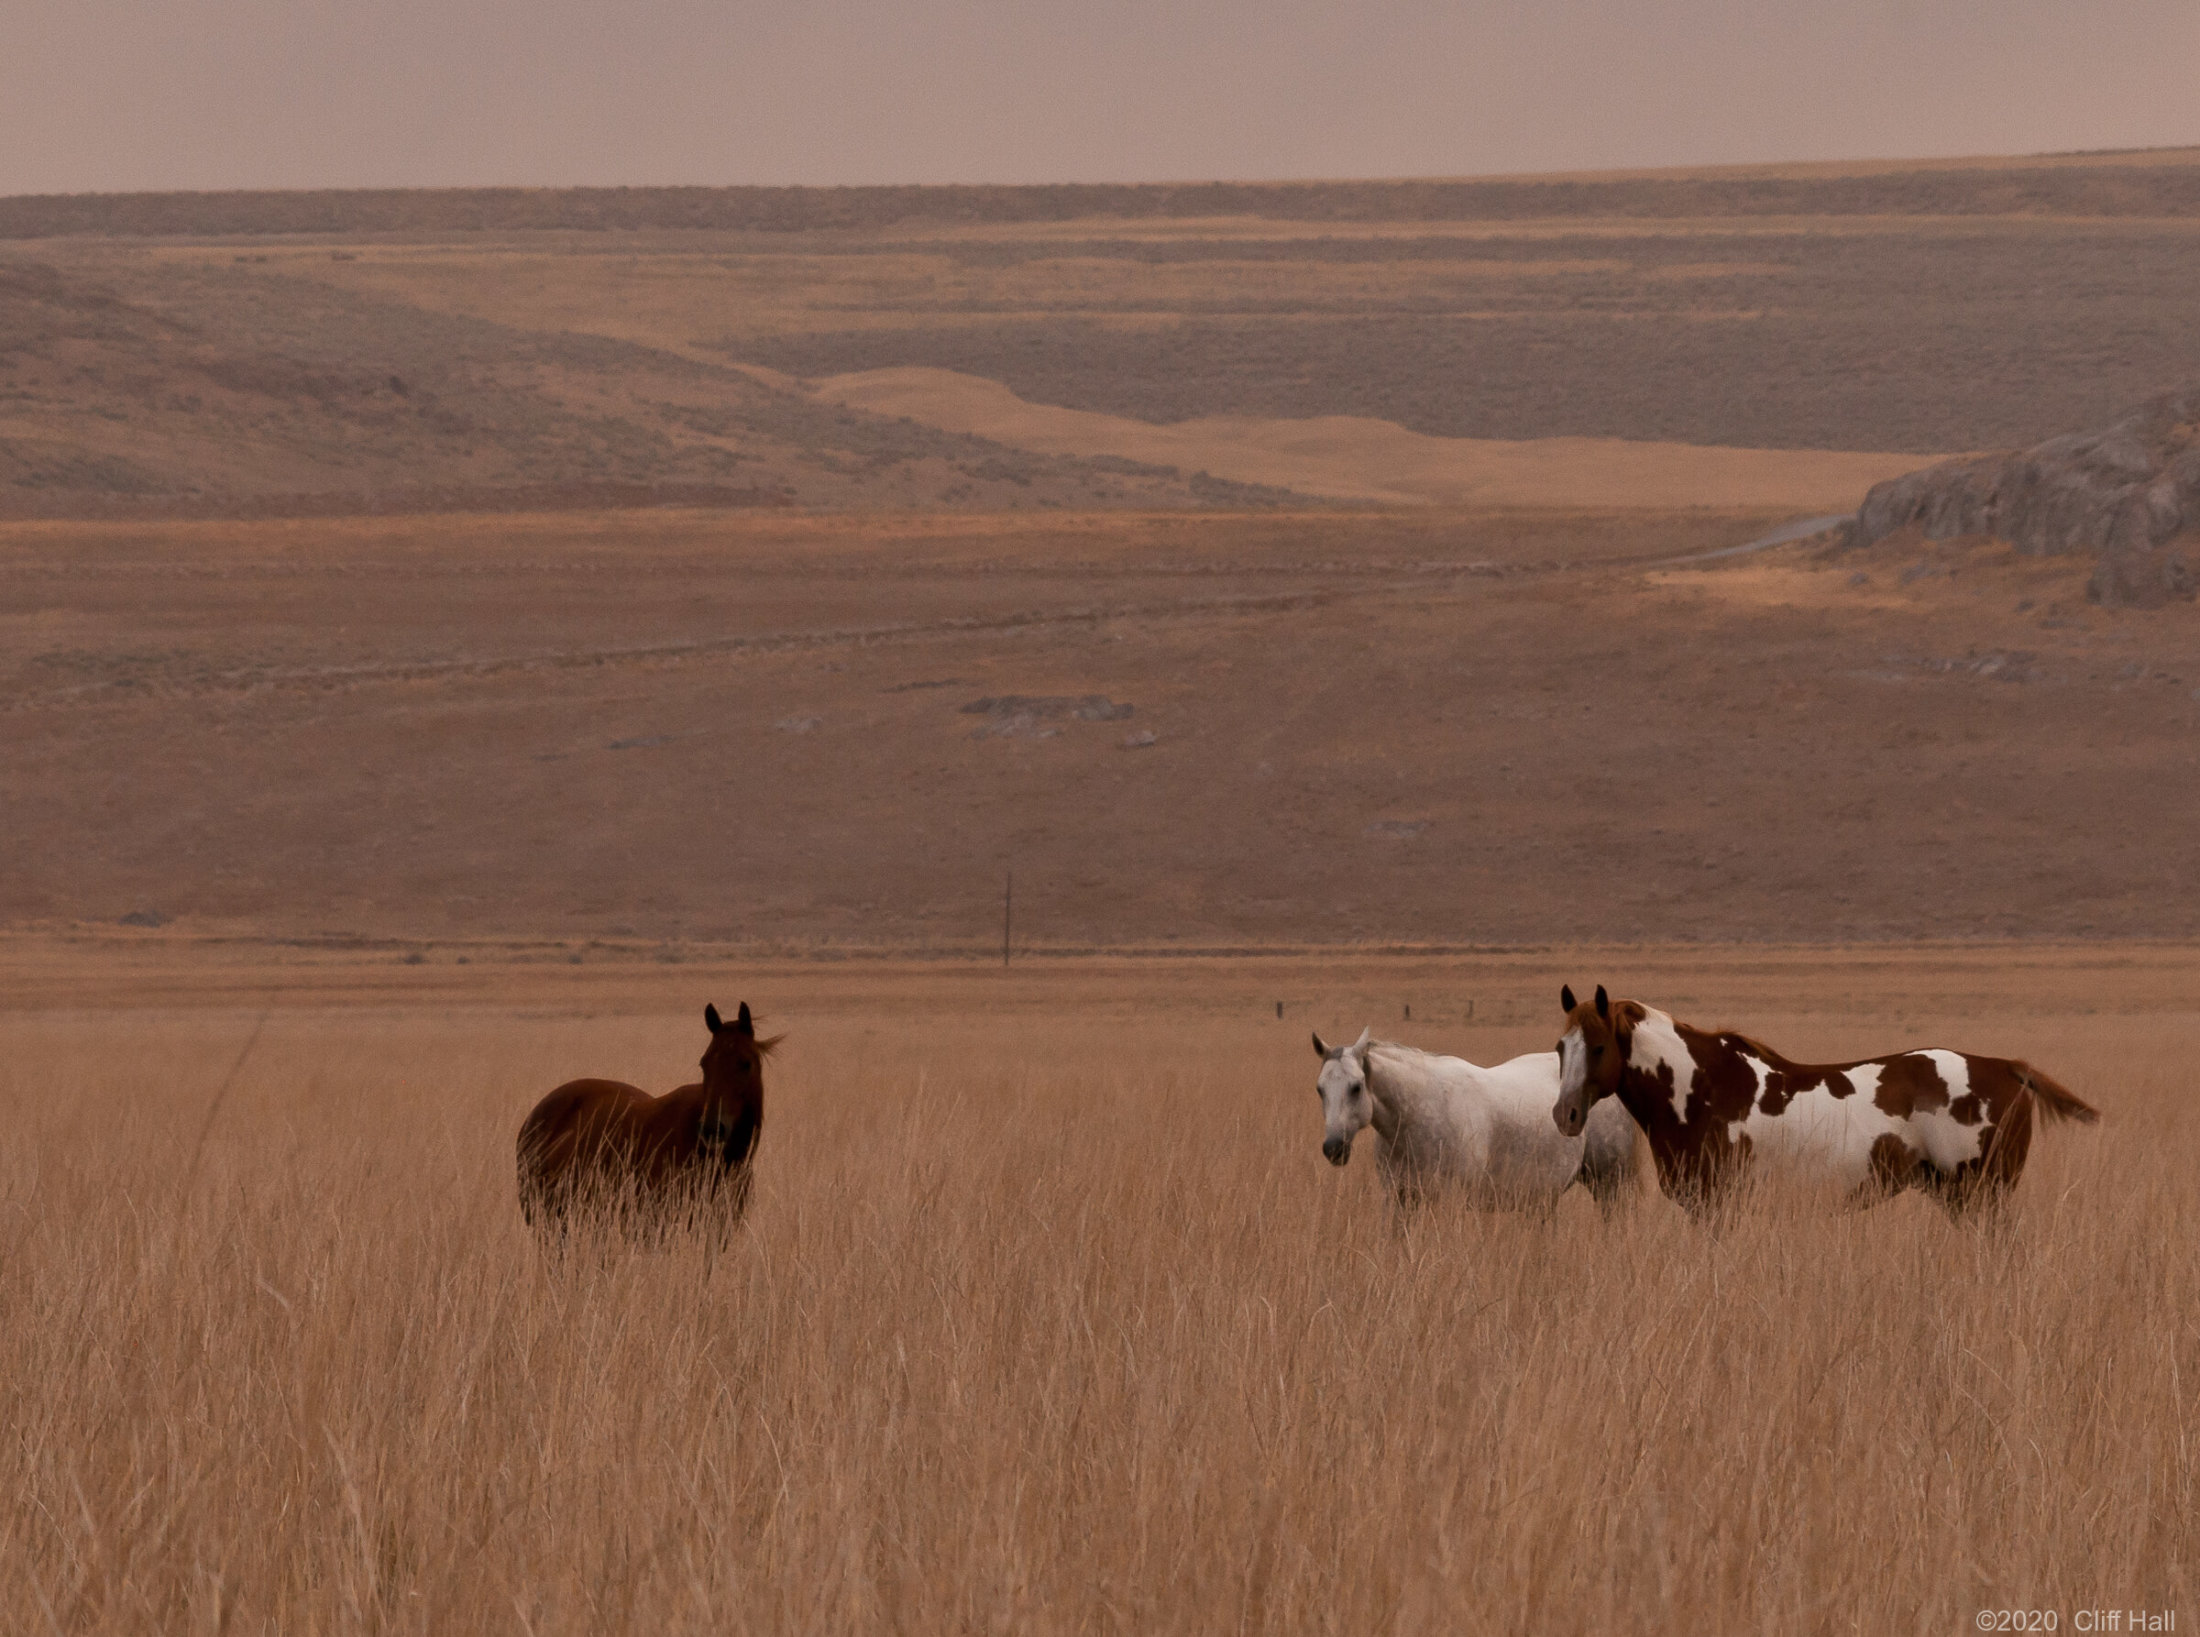 Horses in tall grass